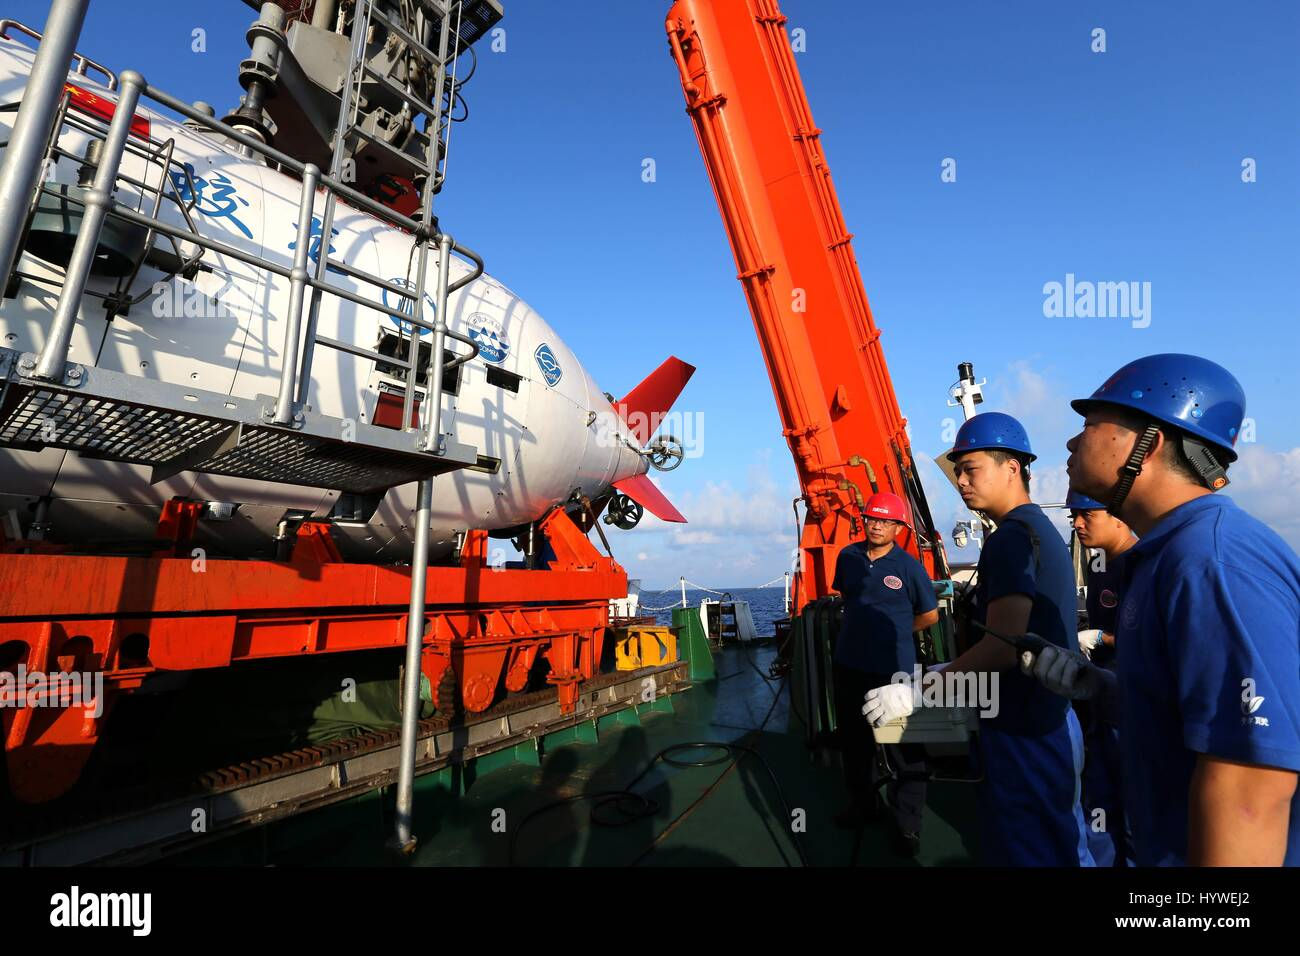 South China Sea. 26th April, 2017. China's manned submersible Jiaolong prepares its first dive this year in the Stock Photo